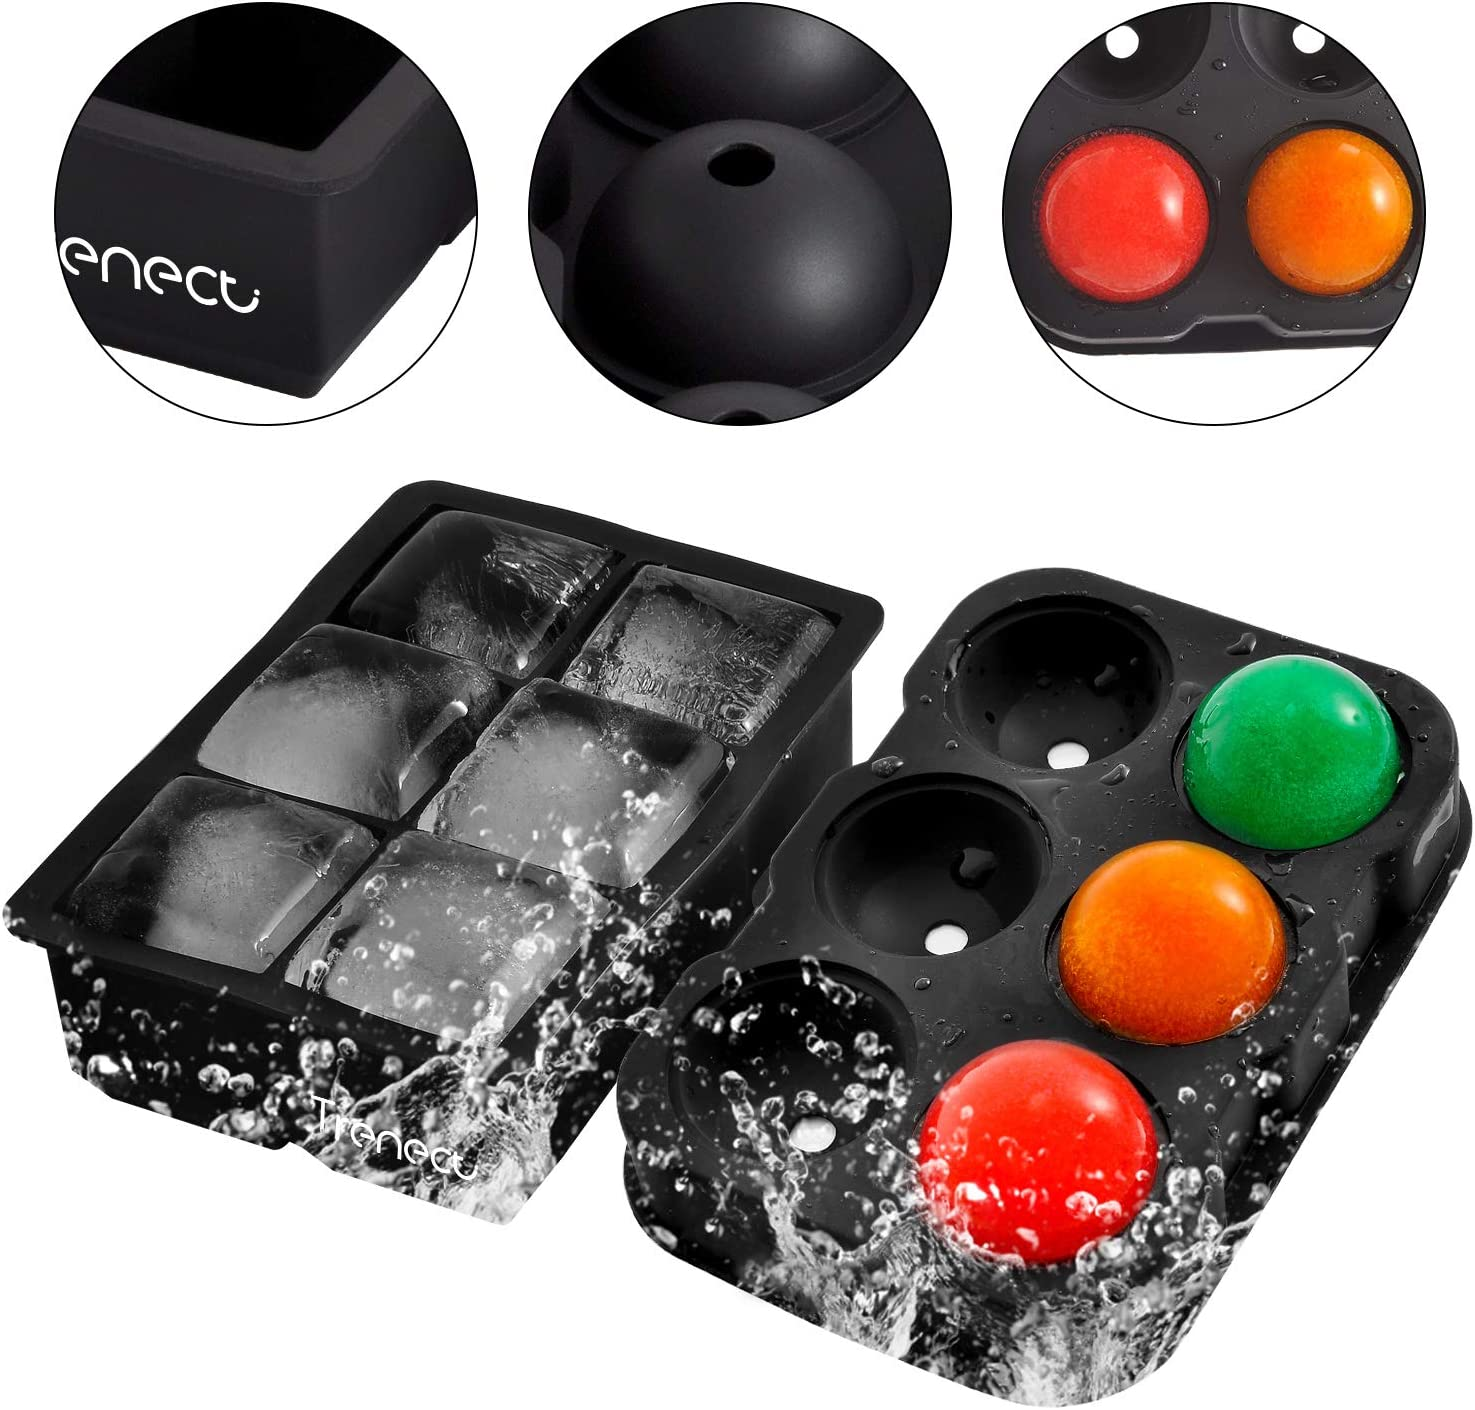 Black BPA Free Set of 2 Trenect Ice Cube Trays Silicone Large Size Sphere Ice Ball Maker with Lids /& Square Ice Cube Molds for Whiskey and Cocktails